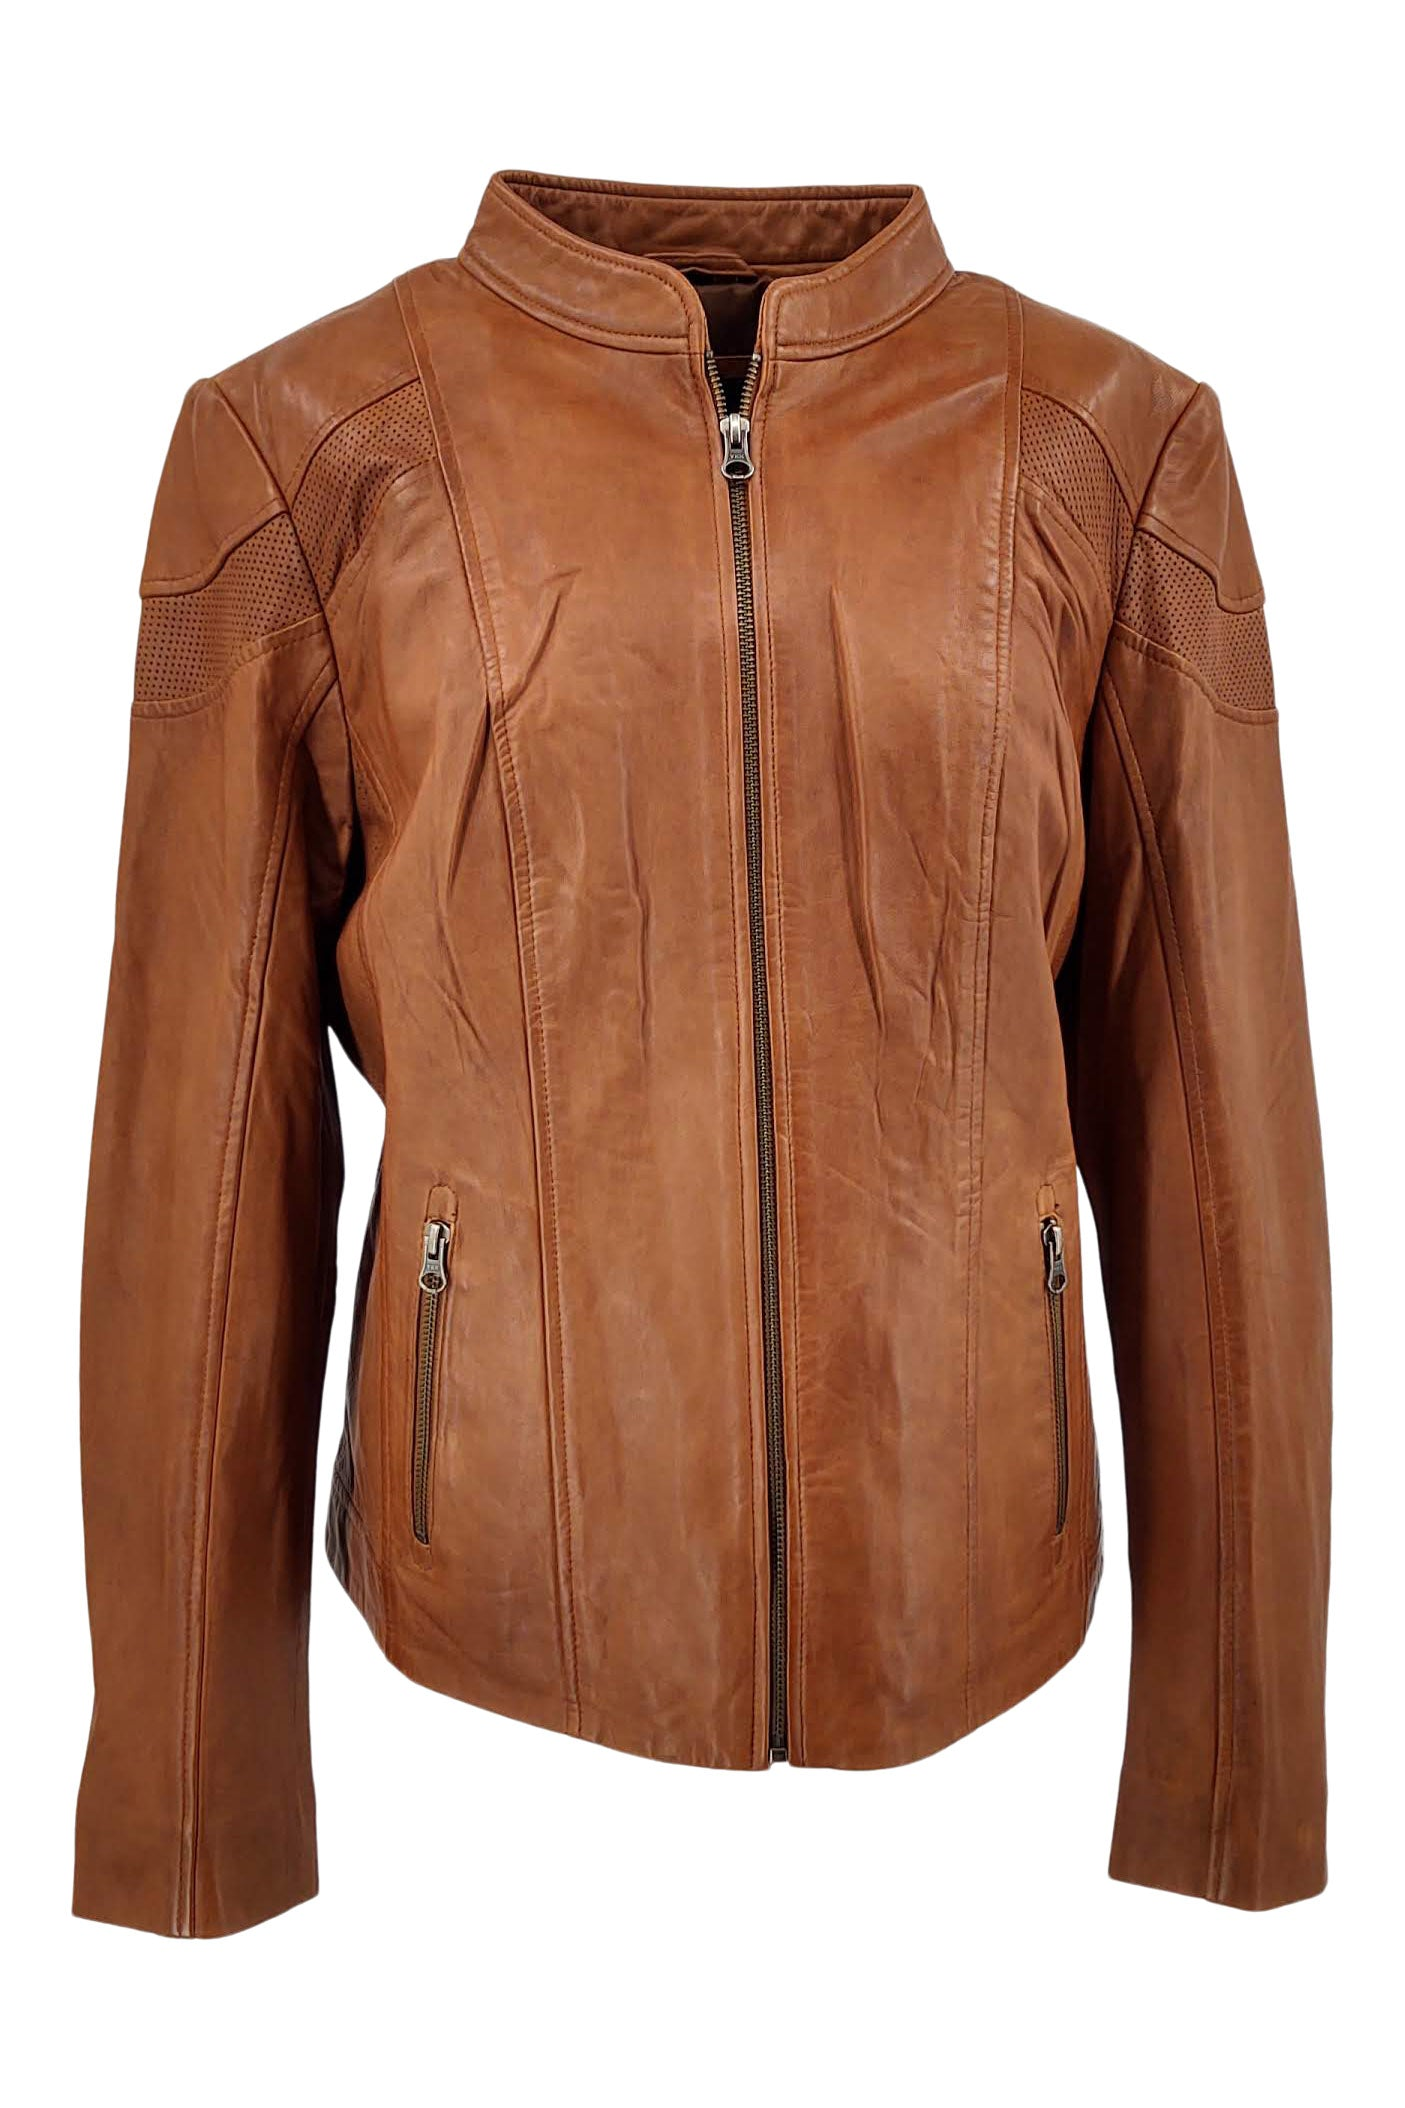 Gattie - Lamb Glove Leather - Women - Tan | STAMPE PELS